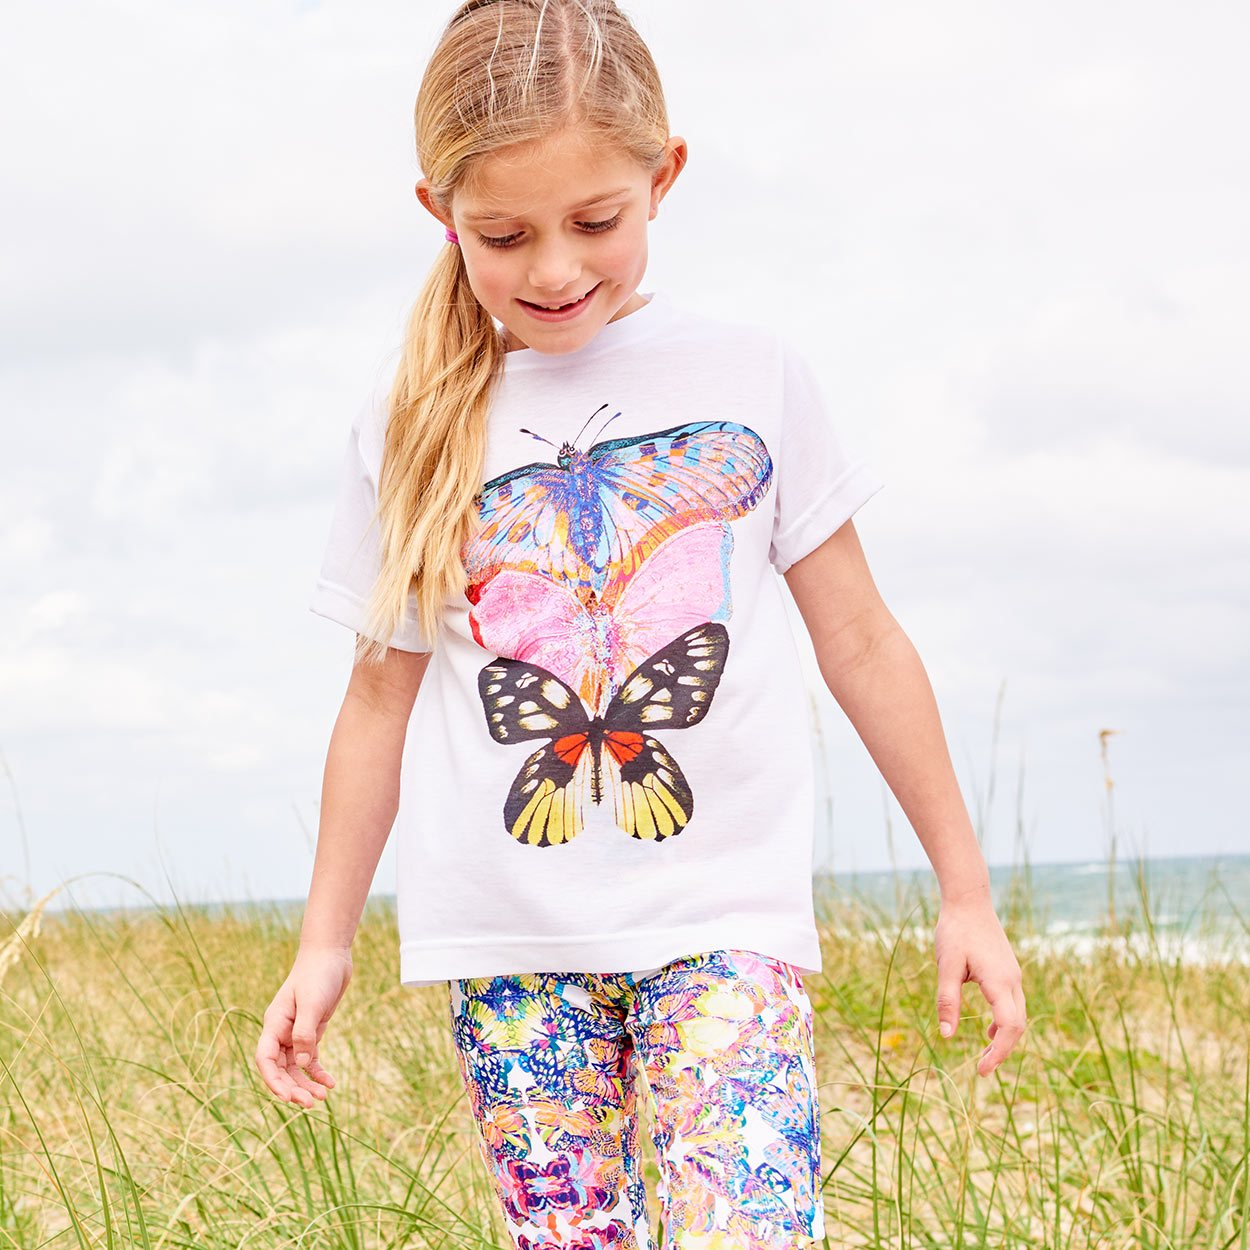 Girls Butterfly Art Graphic Tshirt Size Xs L White Pink Blue Opaline World Little Girl On The Beach Looking For Shells Sunpoplife